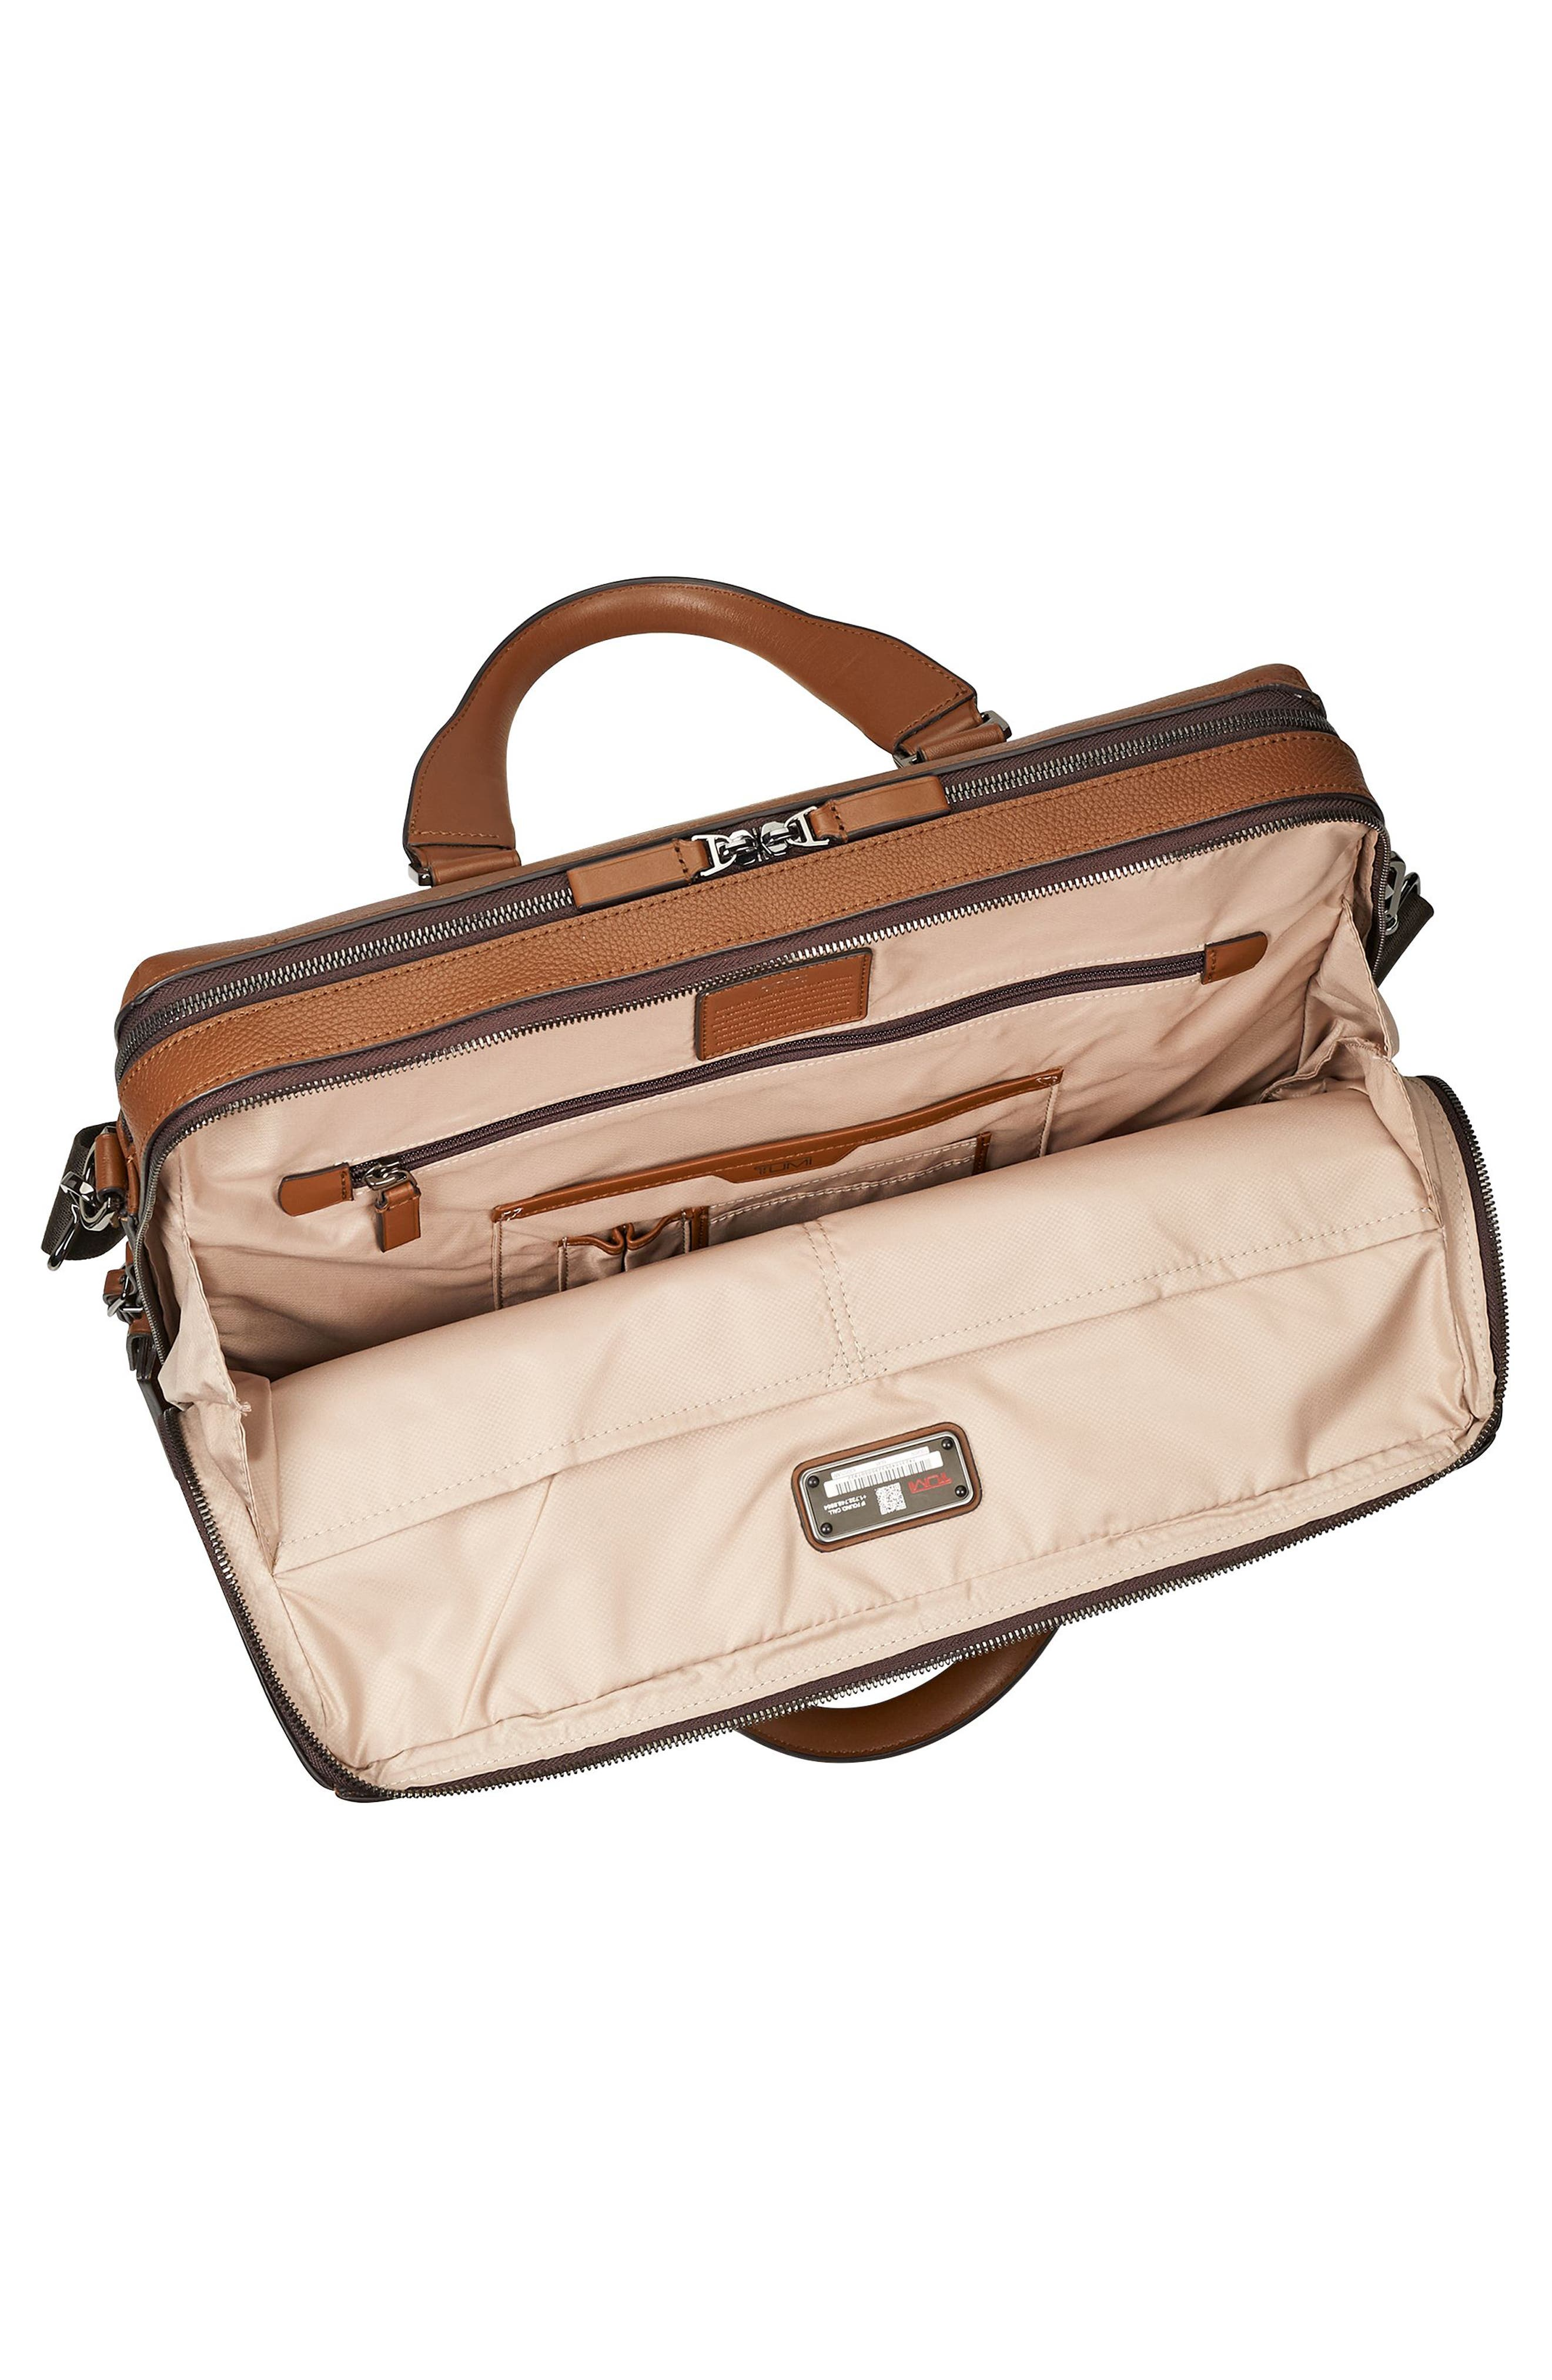 Harrison - Horton Briefcase,                             Alternate thumbnail 3, color,                             UMBER PEBBLED